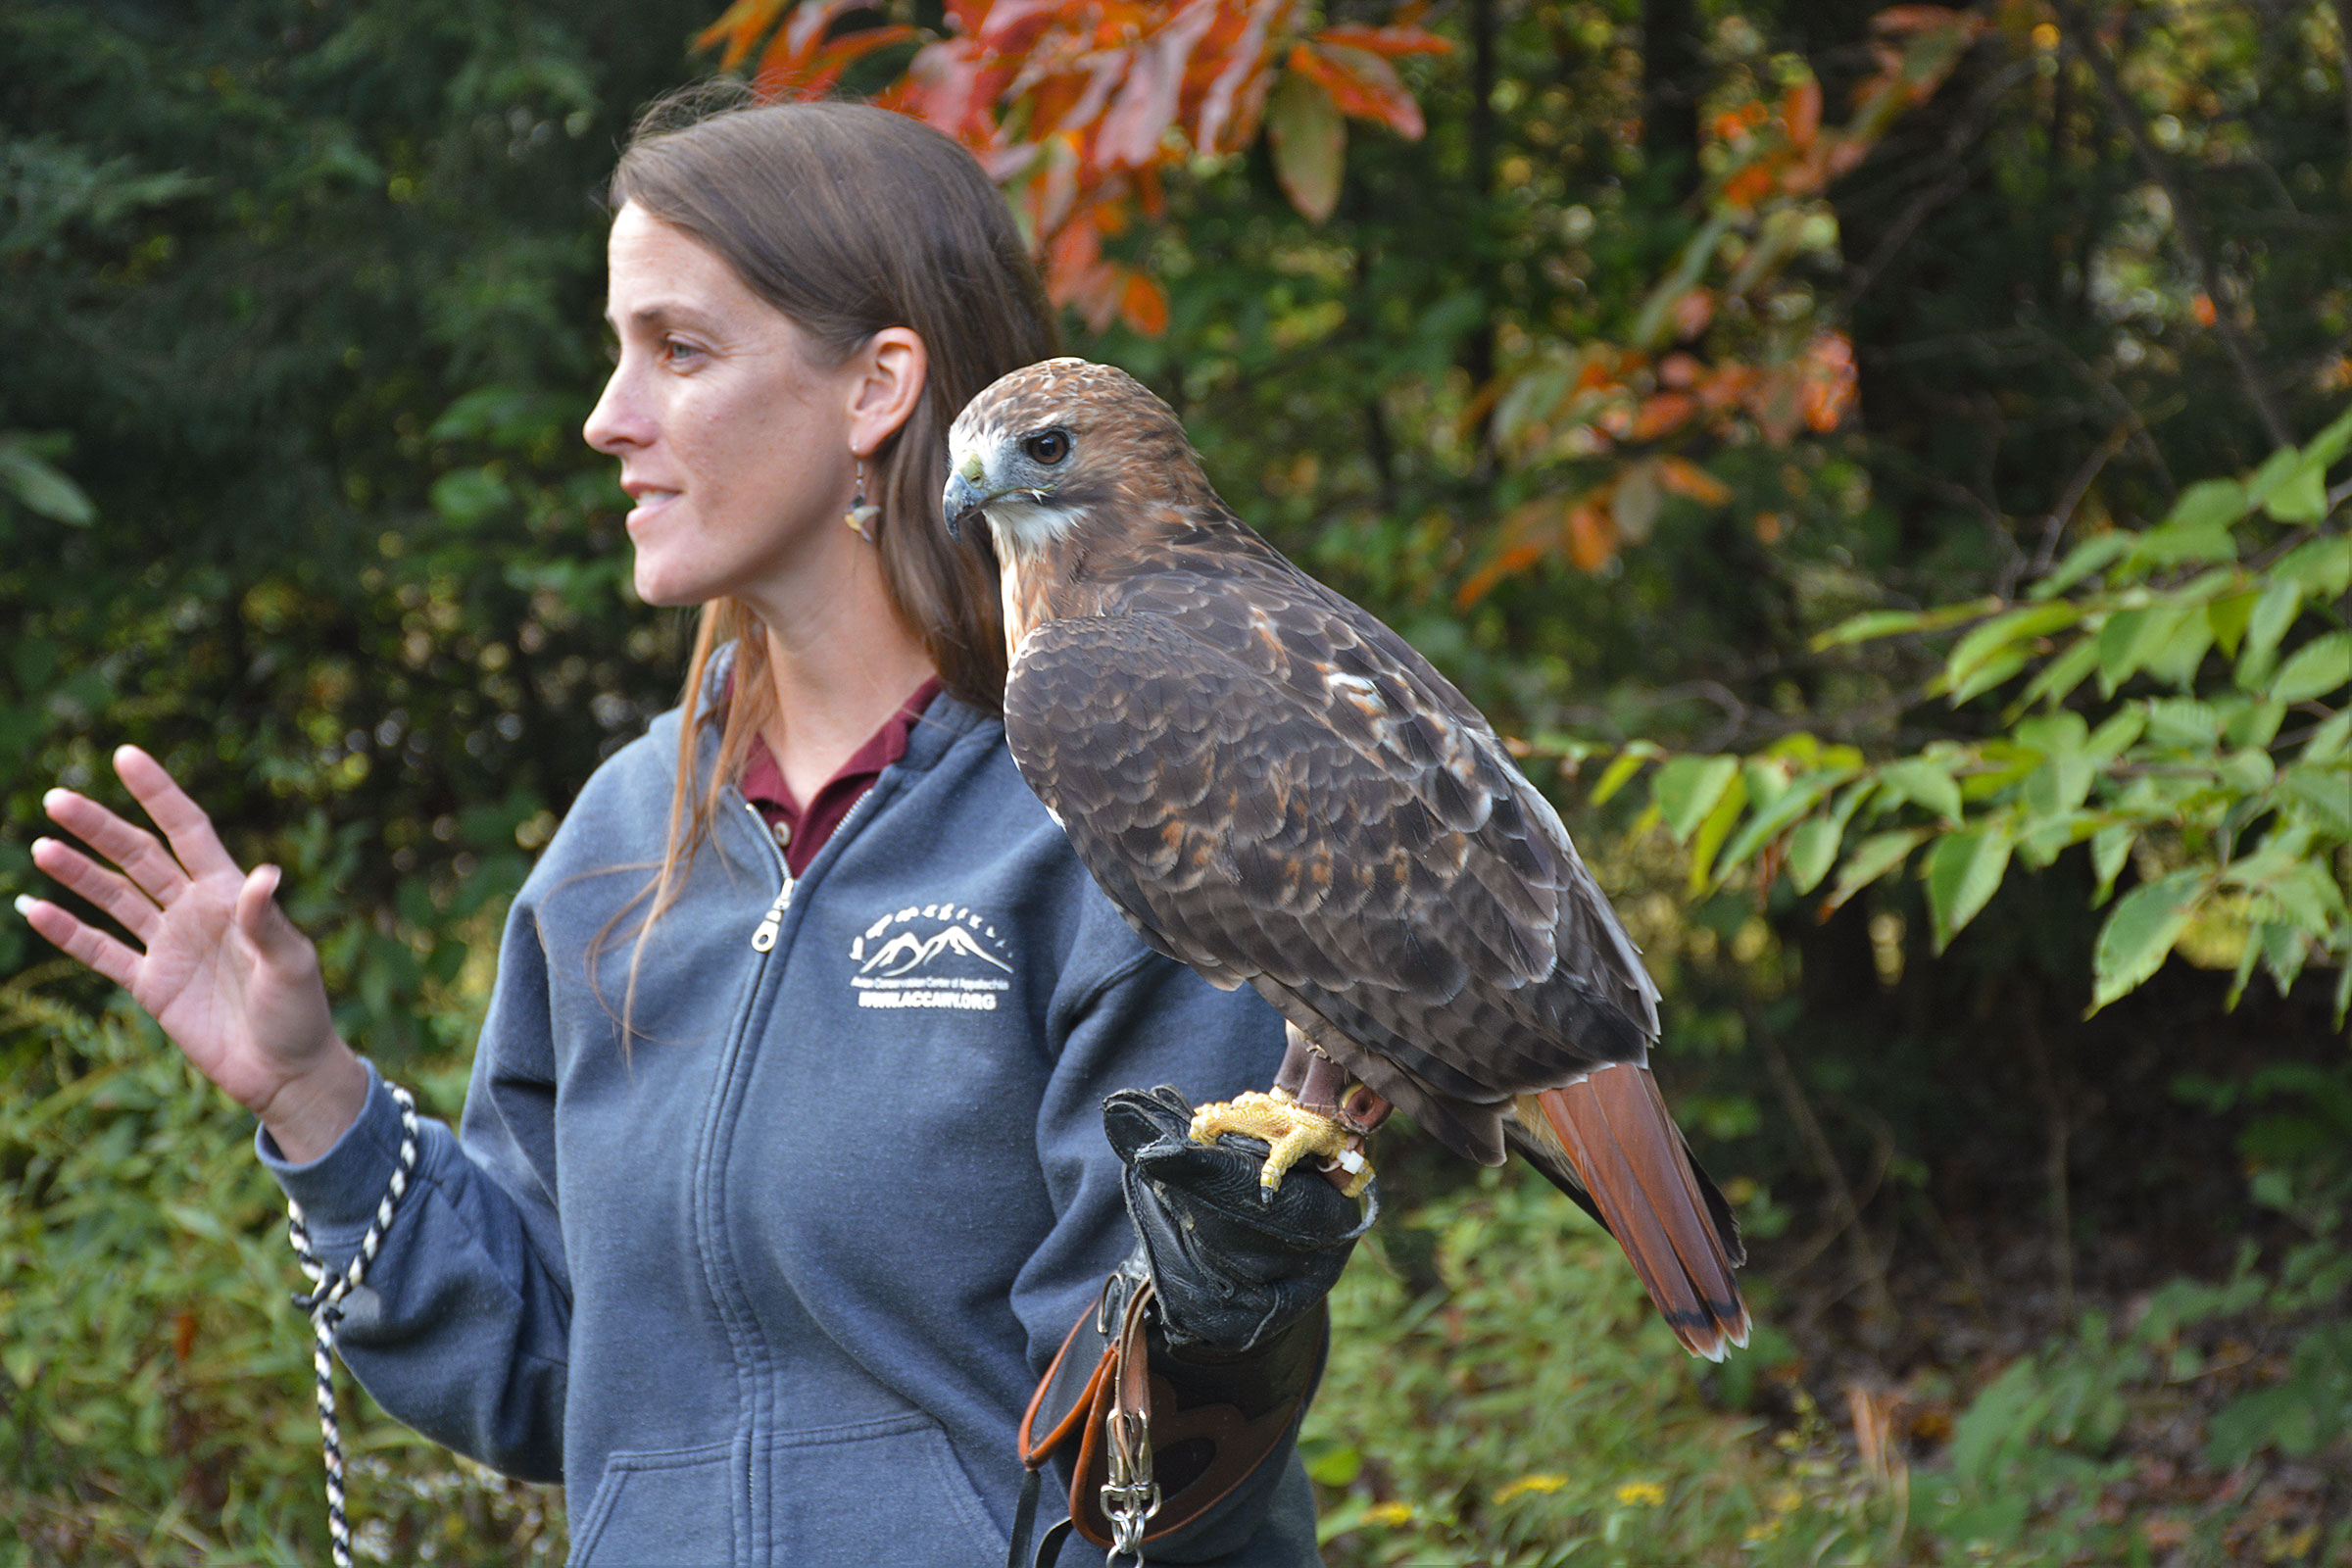 The writer with Canaan, a female Red-tailed Hawk from the Avian Conservation Center of Appalachia. Despite a permanent wing injury, Canaan is still as intimidating as she is affectionate. Ruth Bergen